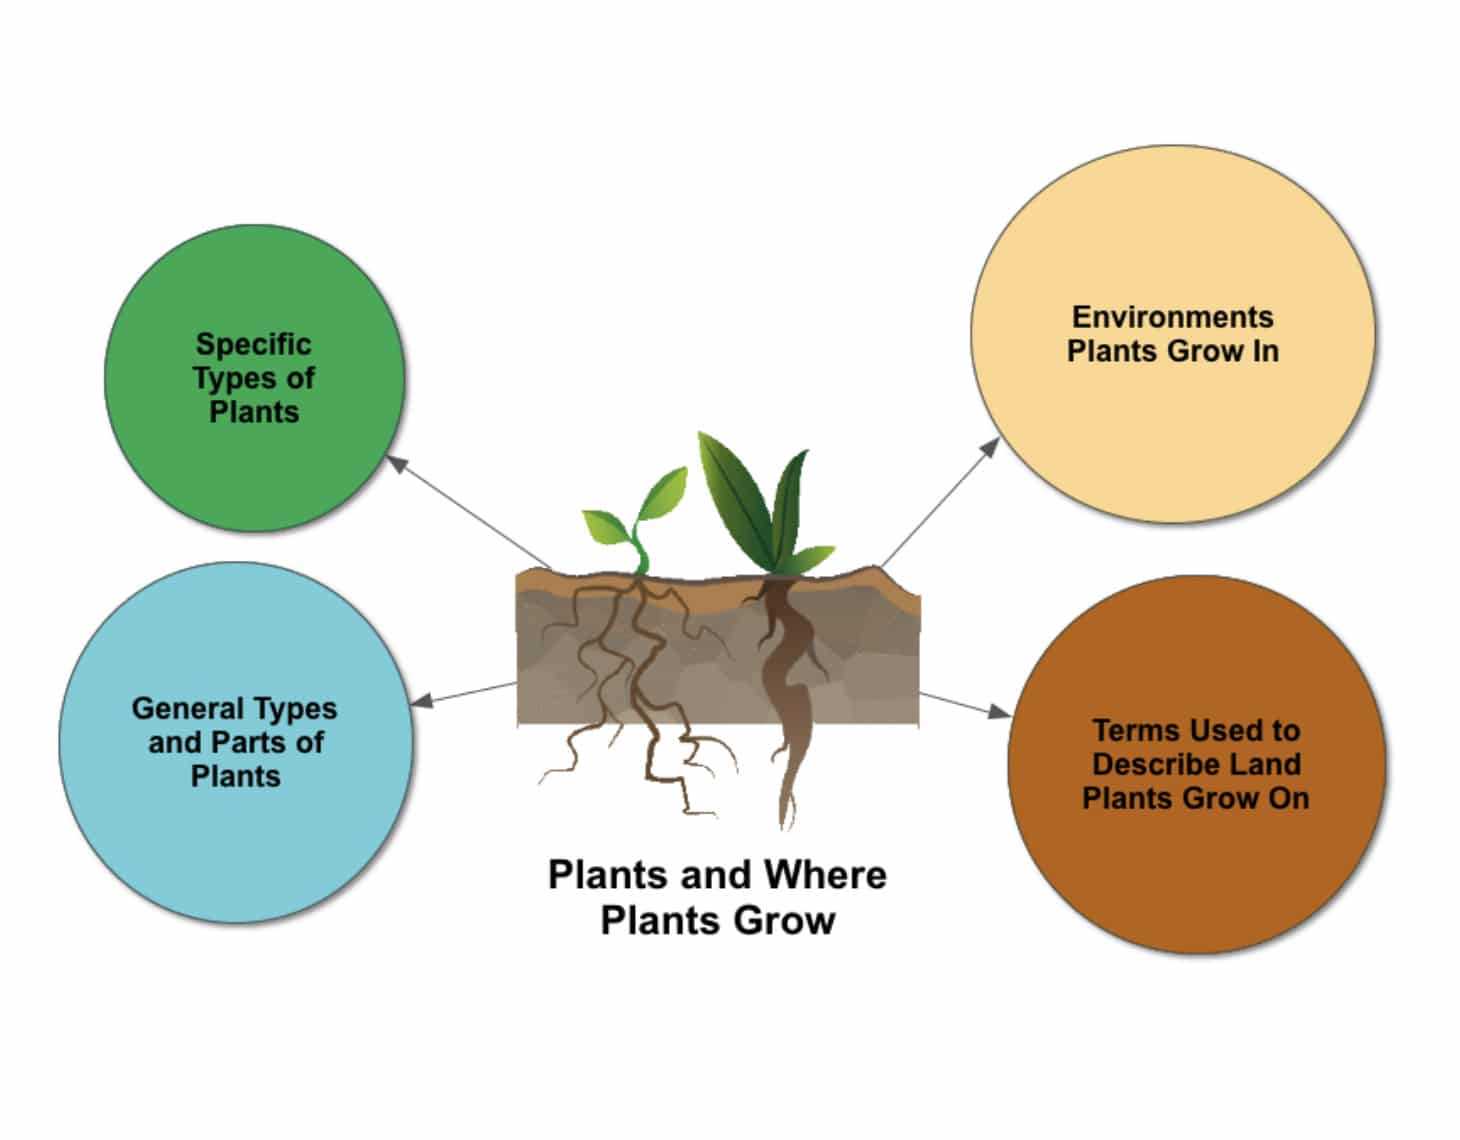 Plants and where plants grow